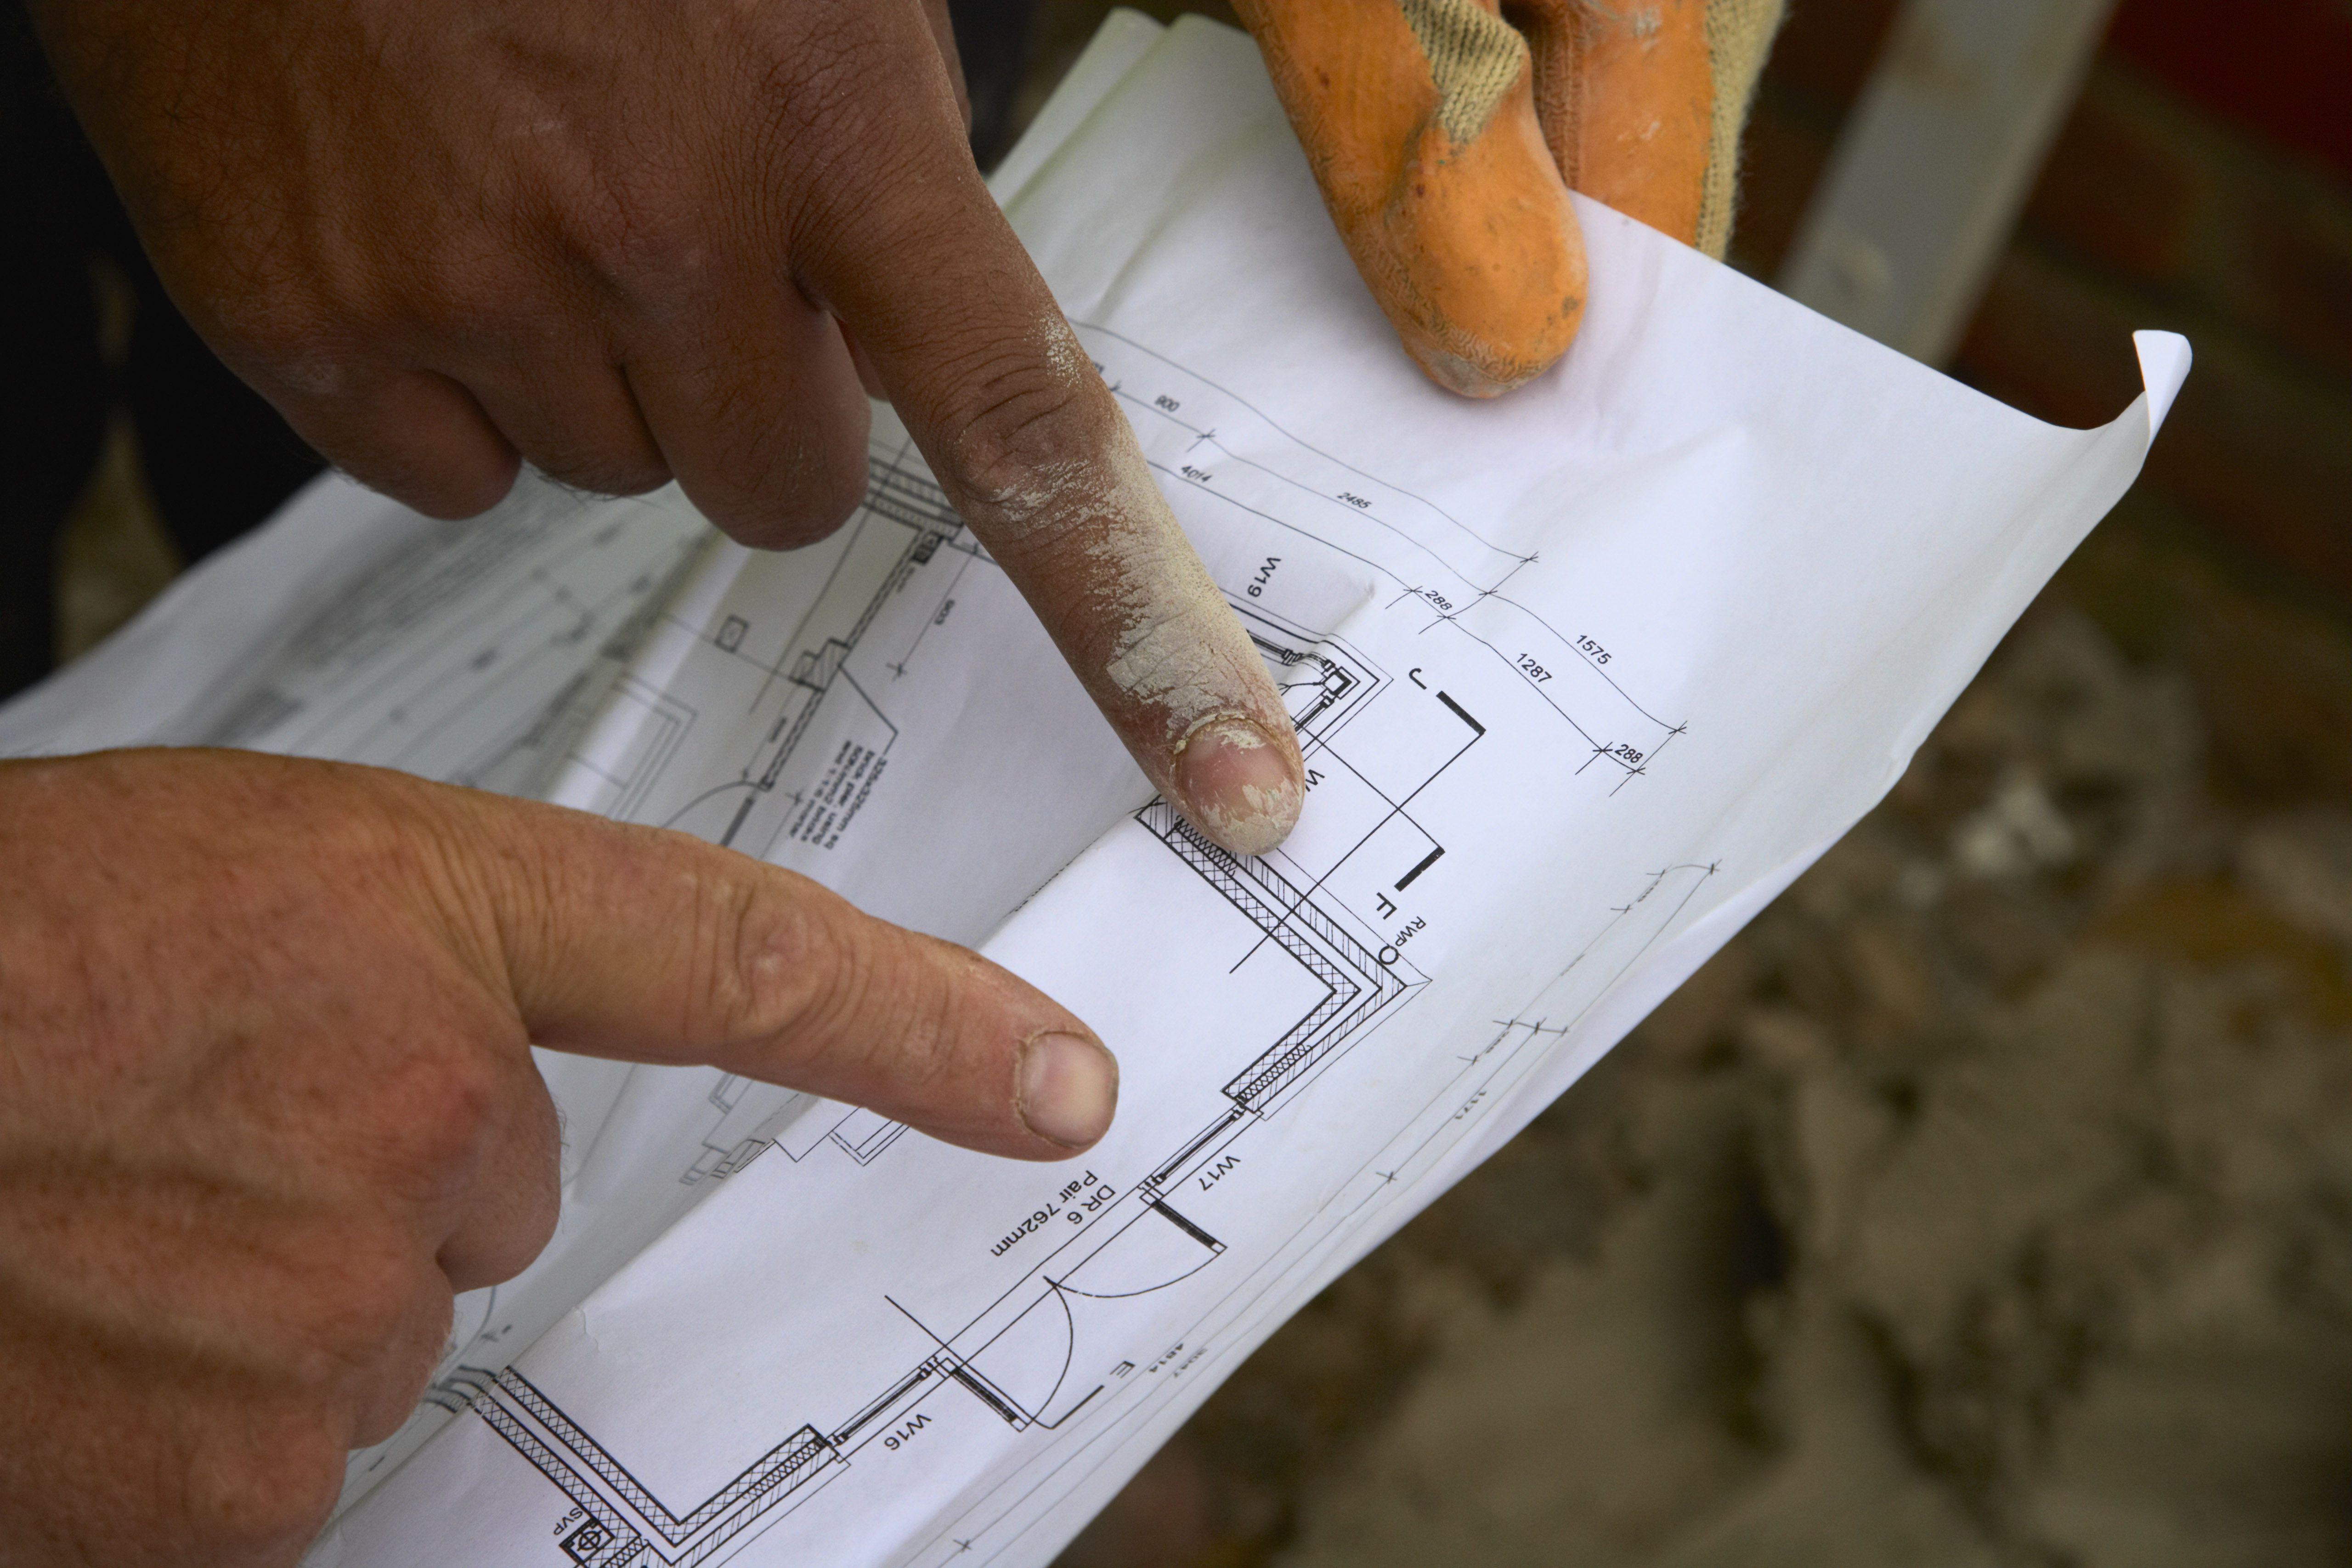 Read And Understand Measurements In House Plans Whether You Are A Homeowner Or Builder Planning Building Workers Looking At All See Their Fingers Pointing Leave The To Builders